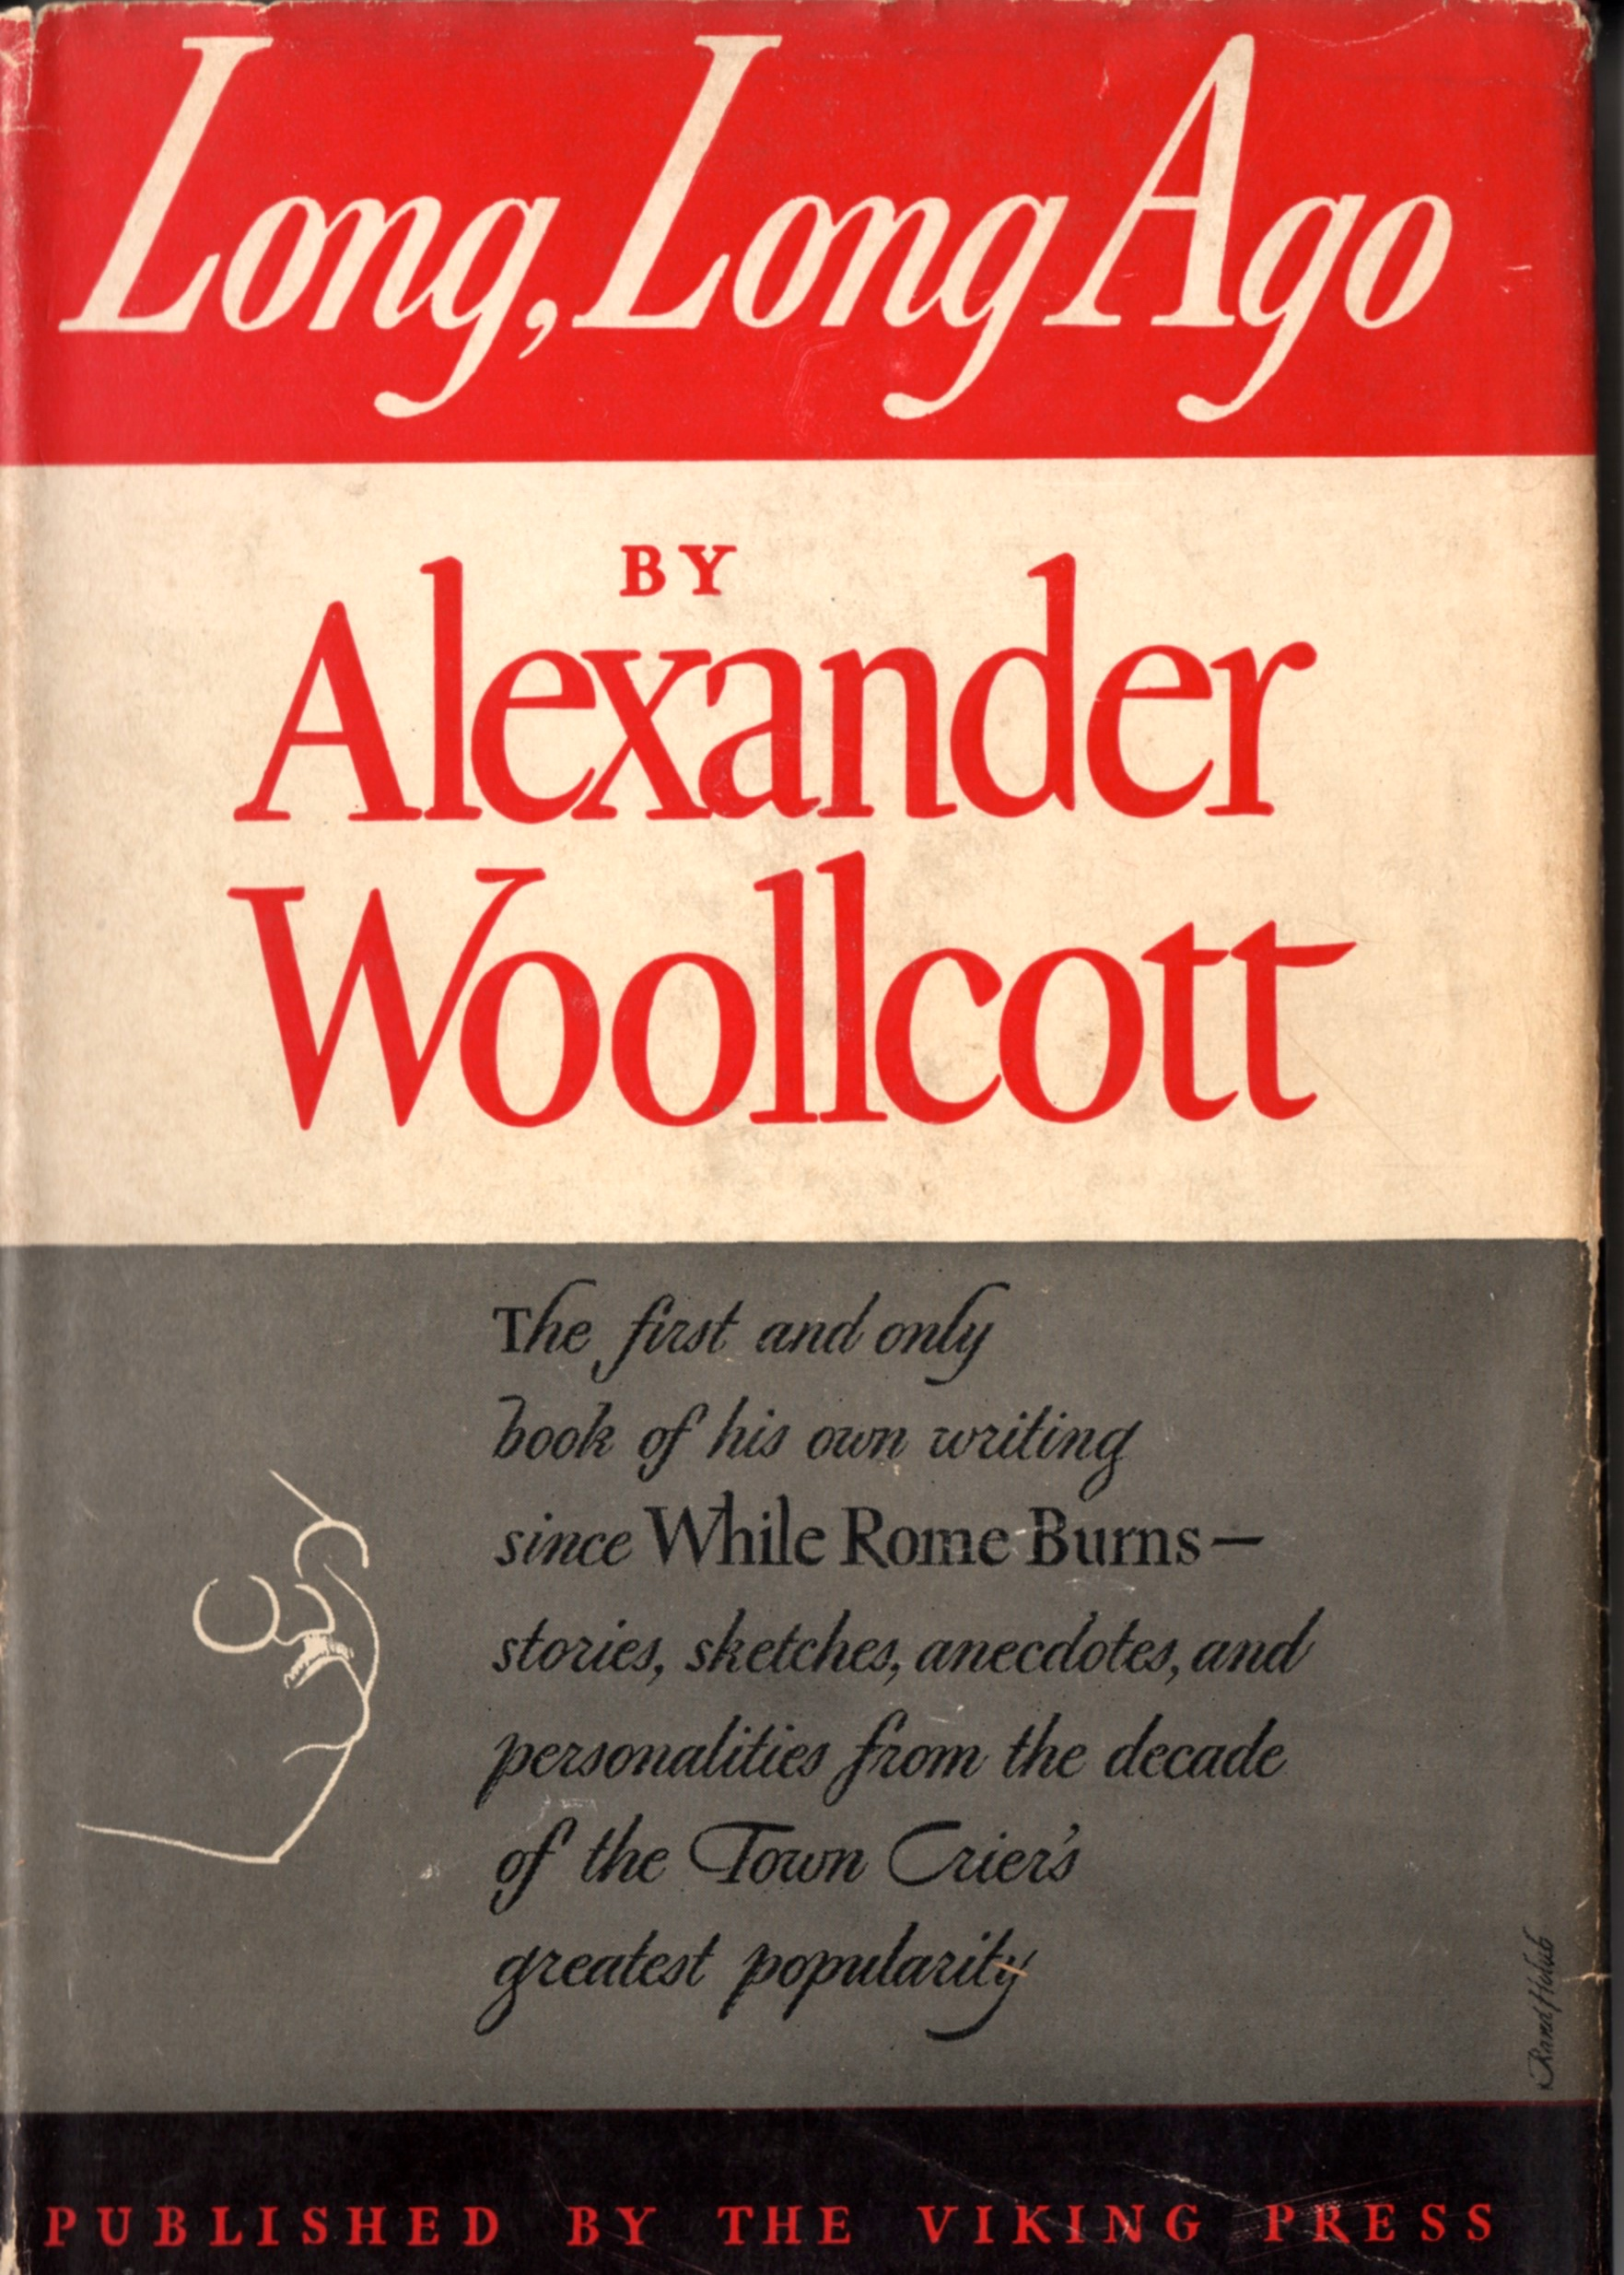 Woollcott's account of the first BSI dinner can be found in this book, published by Viking Press in 1943.